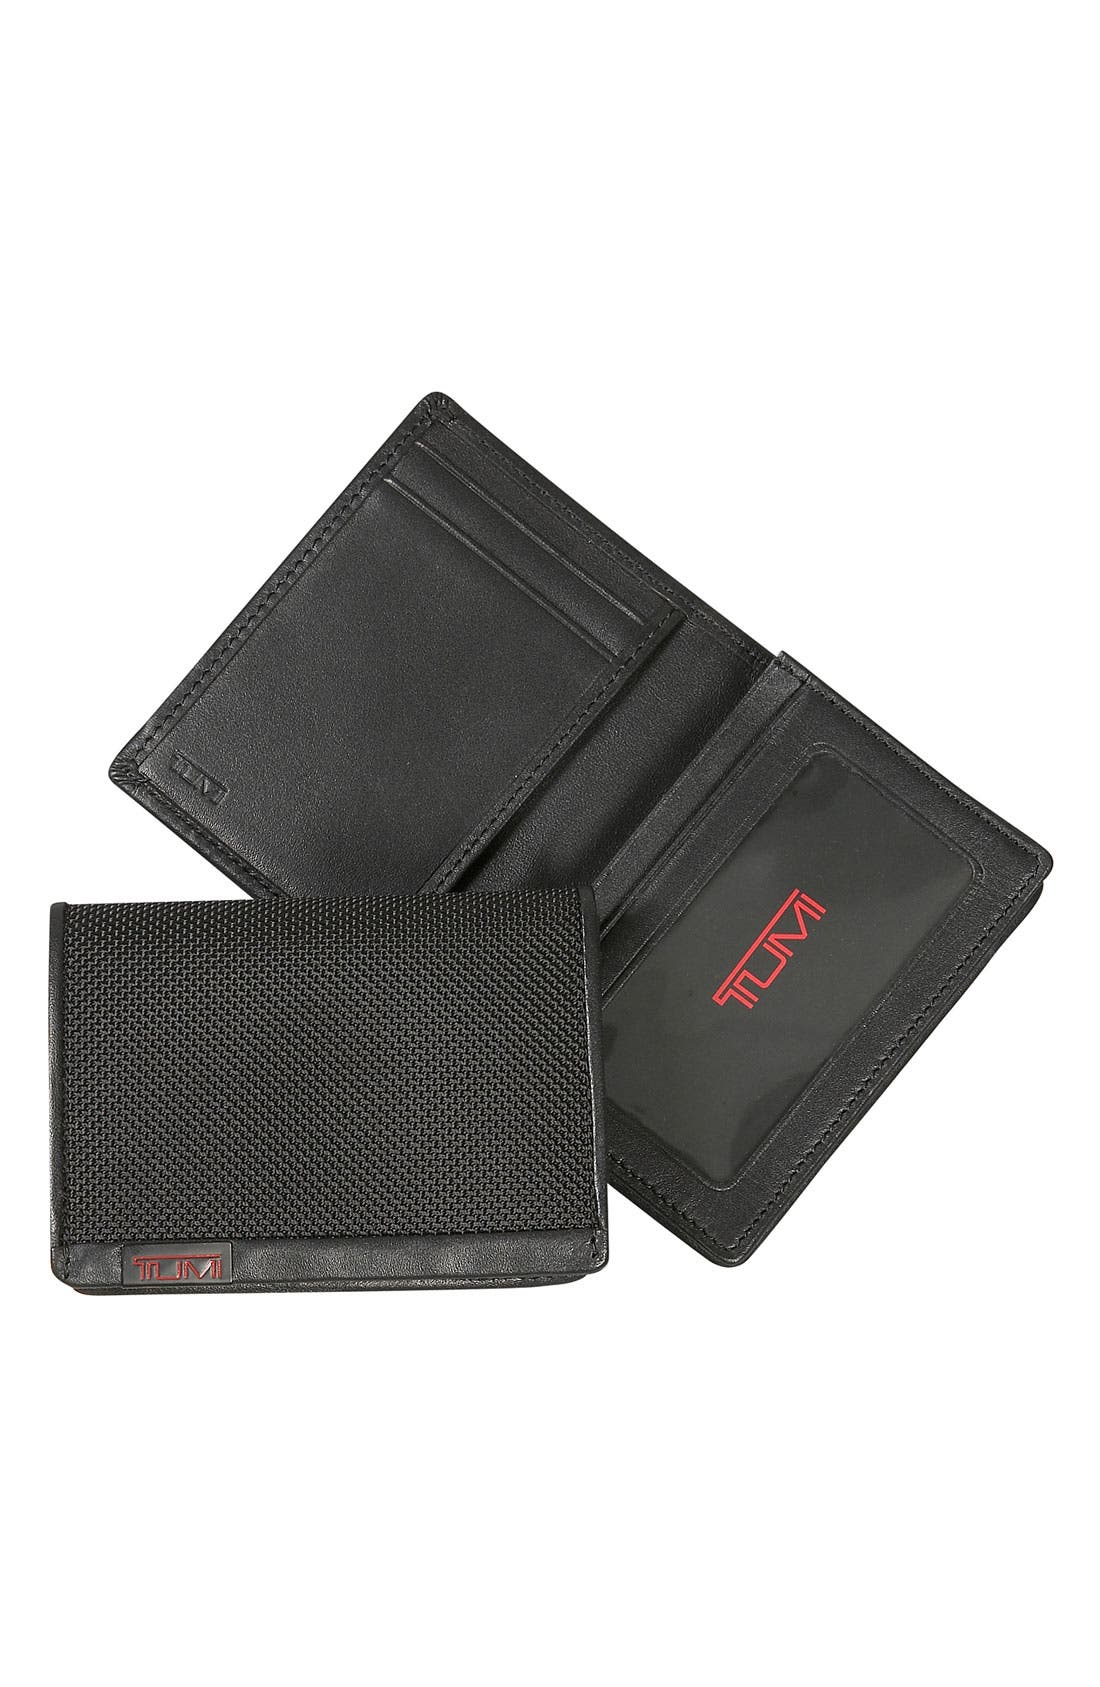 Main Image - Tumi 'Alpha' ID Lock™ Gusseted Card Case